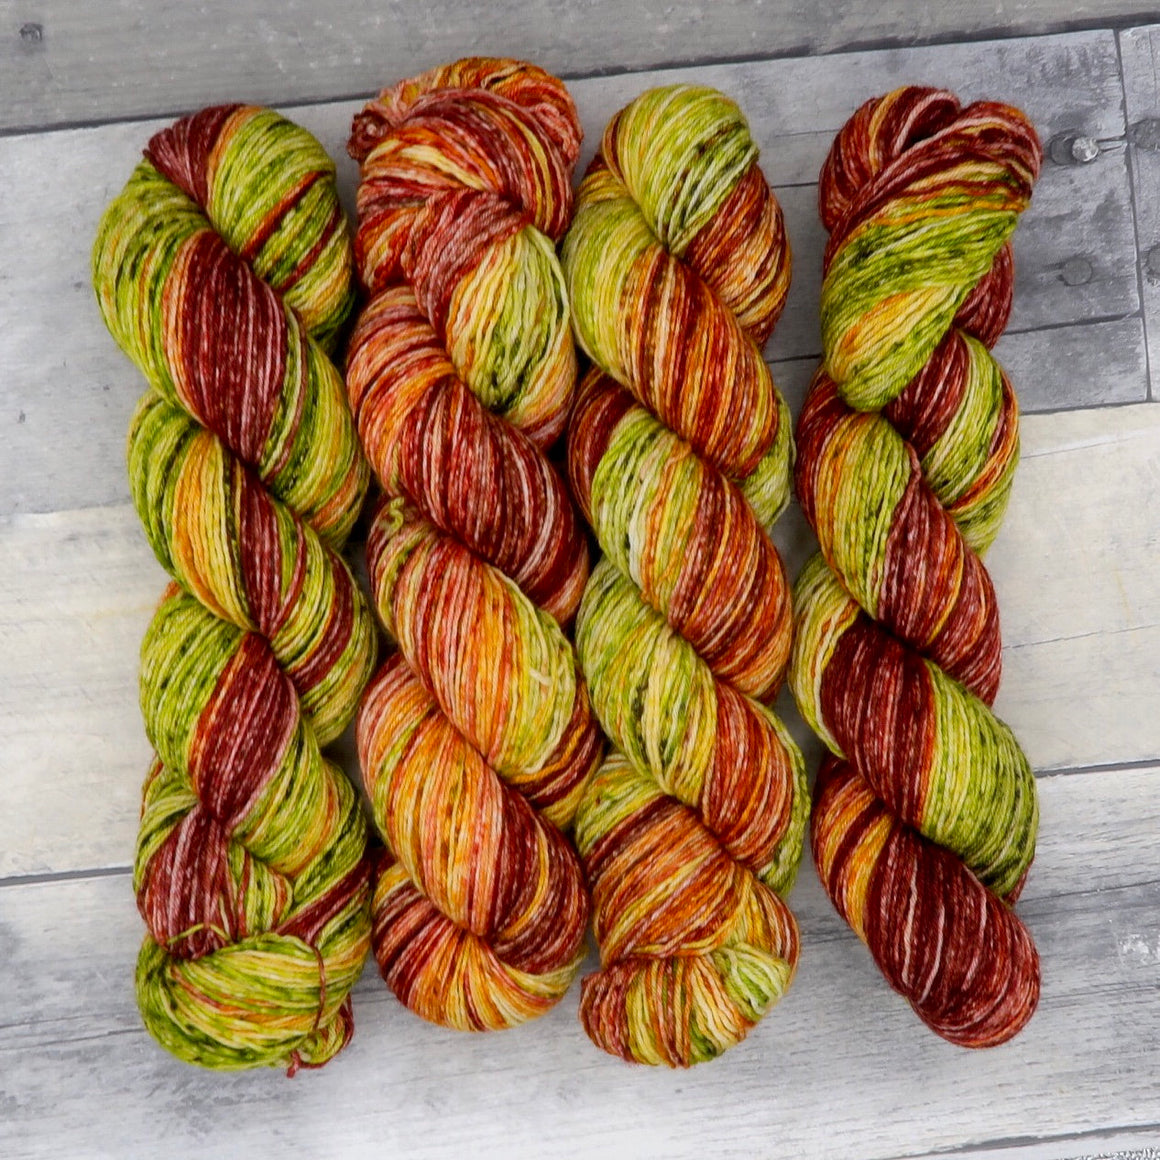 Leaf Peepers - (speckled single 100g gradient) - an autumnal rainbow green, yellow, orange, red and brown